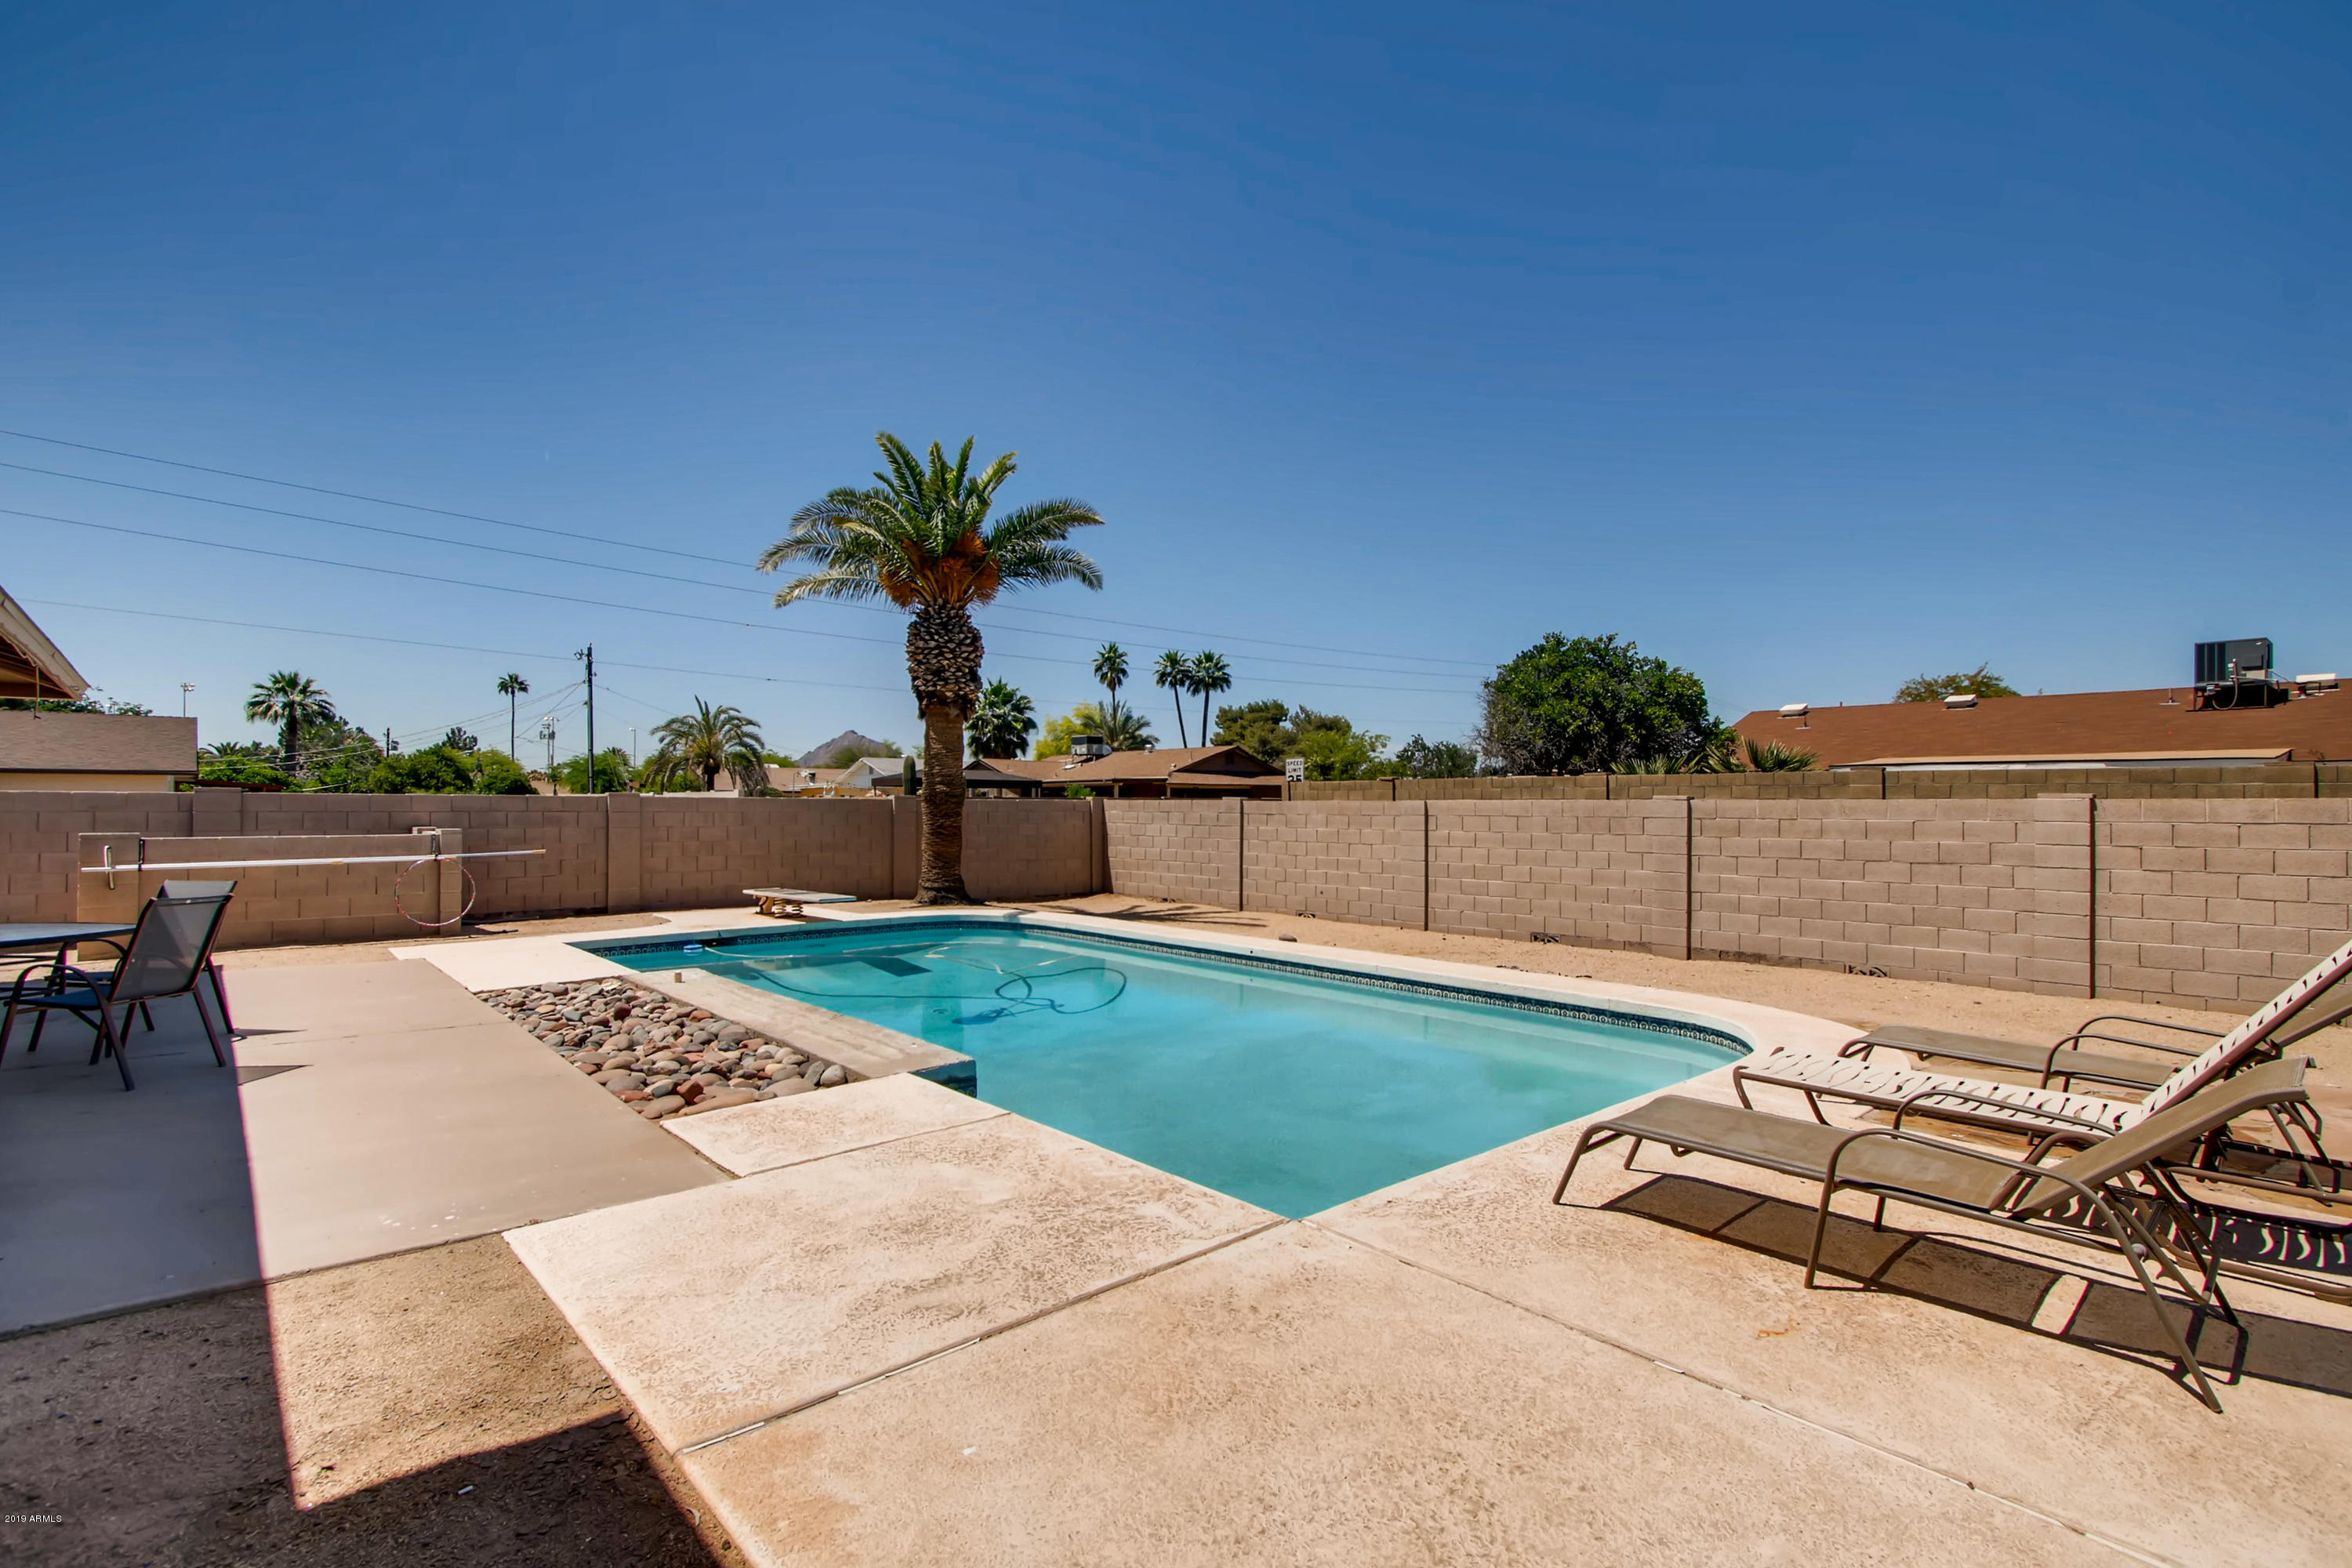 MLS 5922278 8602 E MITCHELL Drive, Scottsdale, AZ 85251 Scottsdale AZ Private Pool